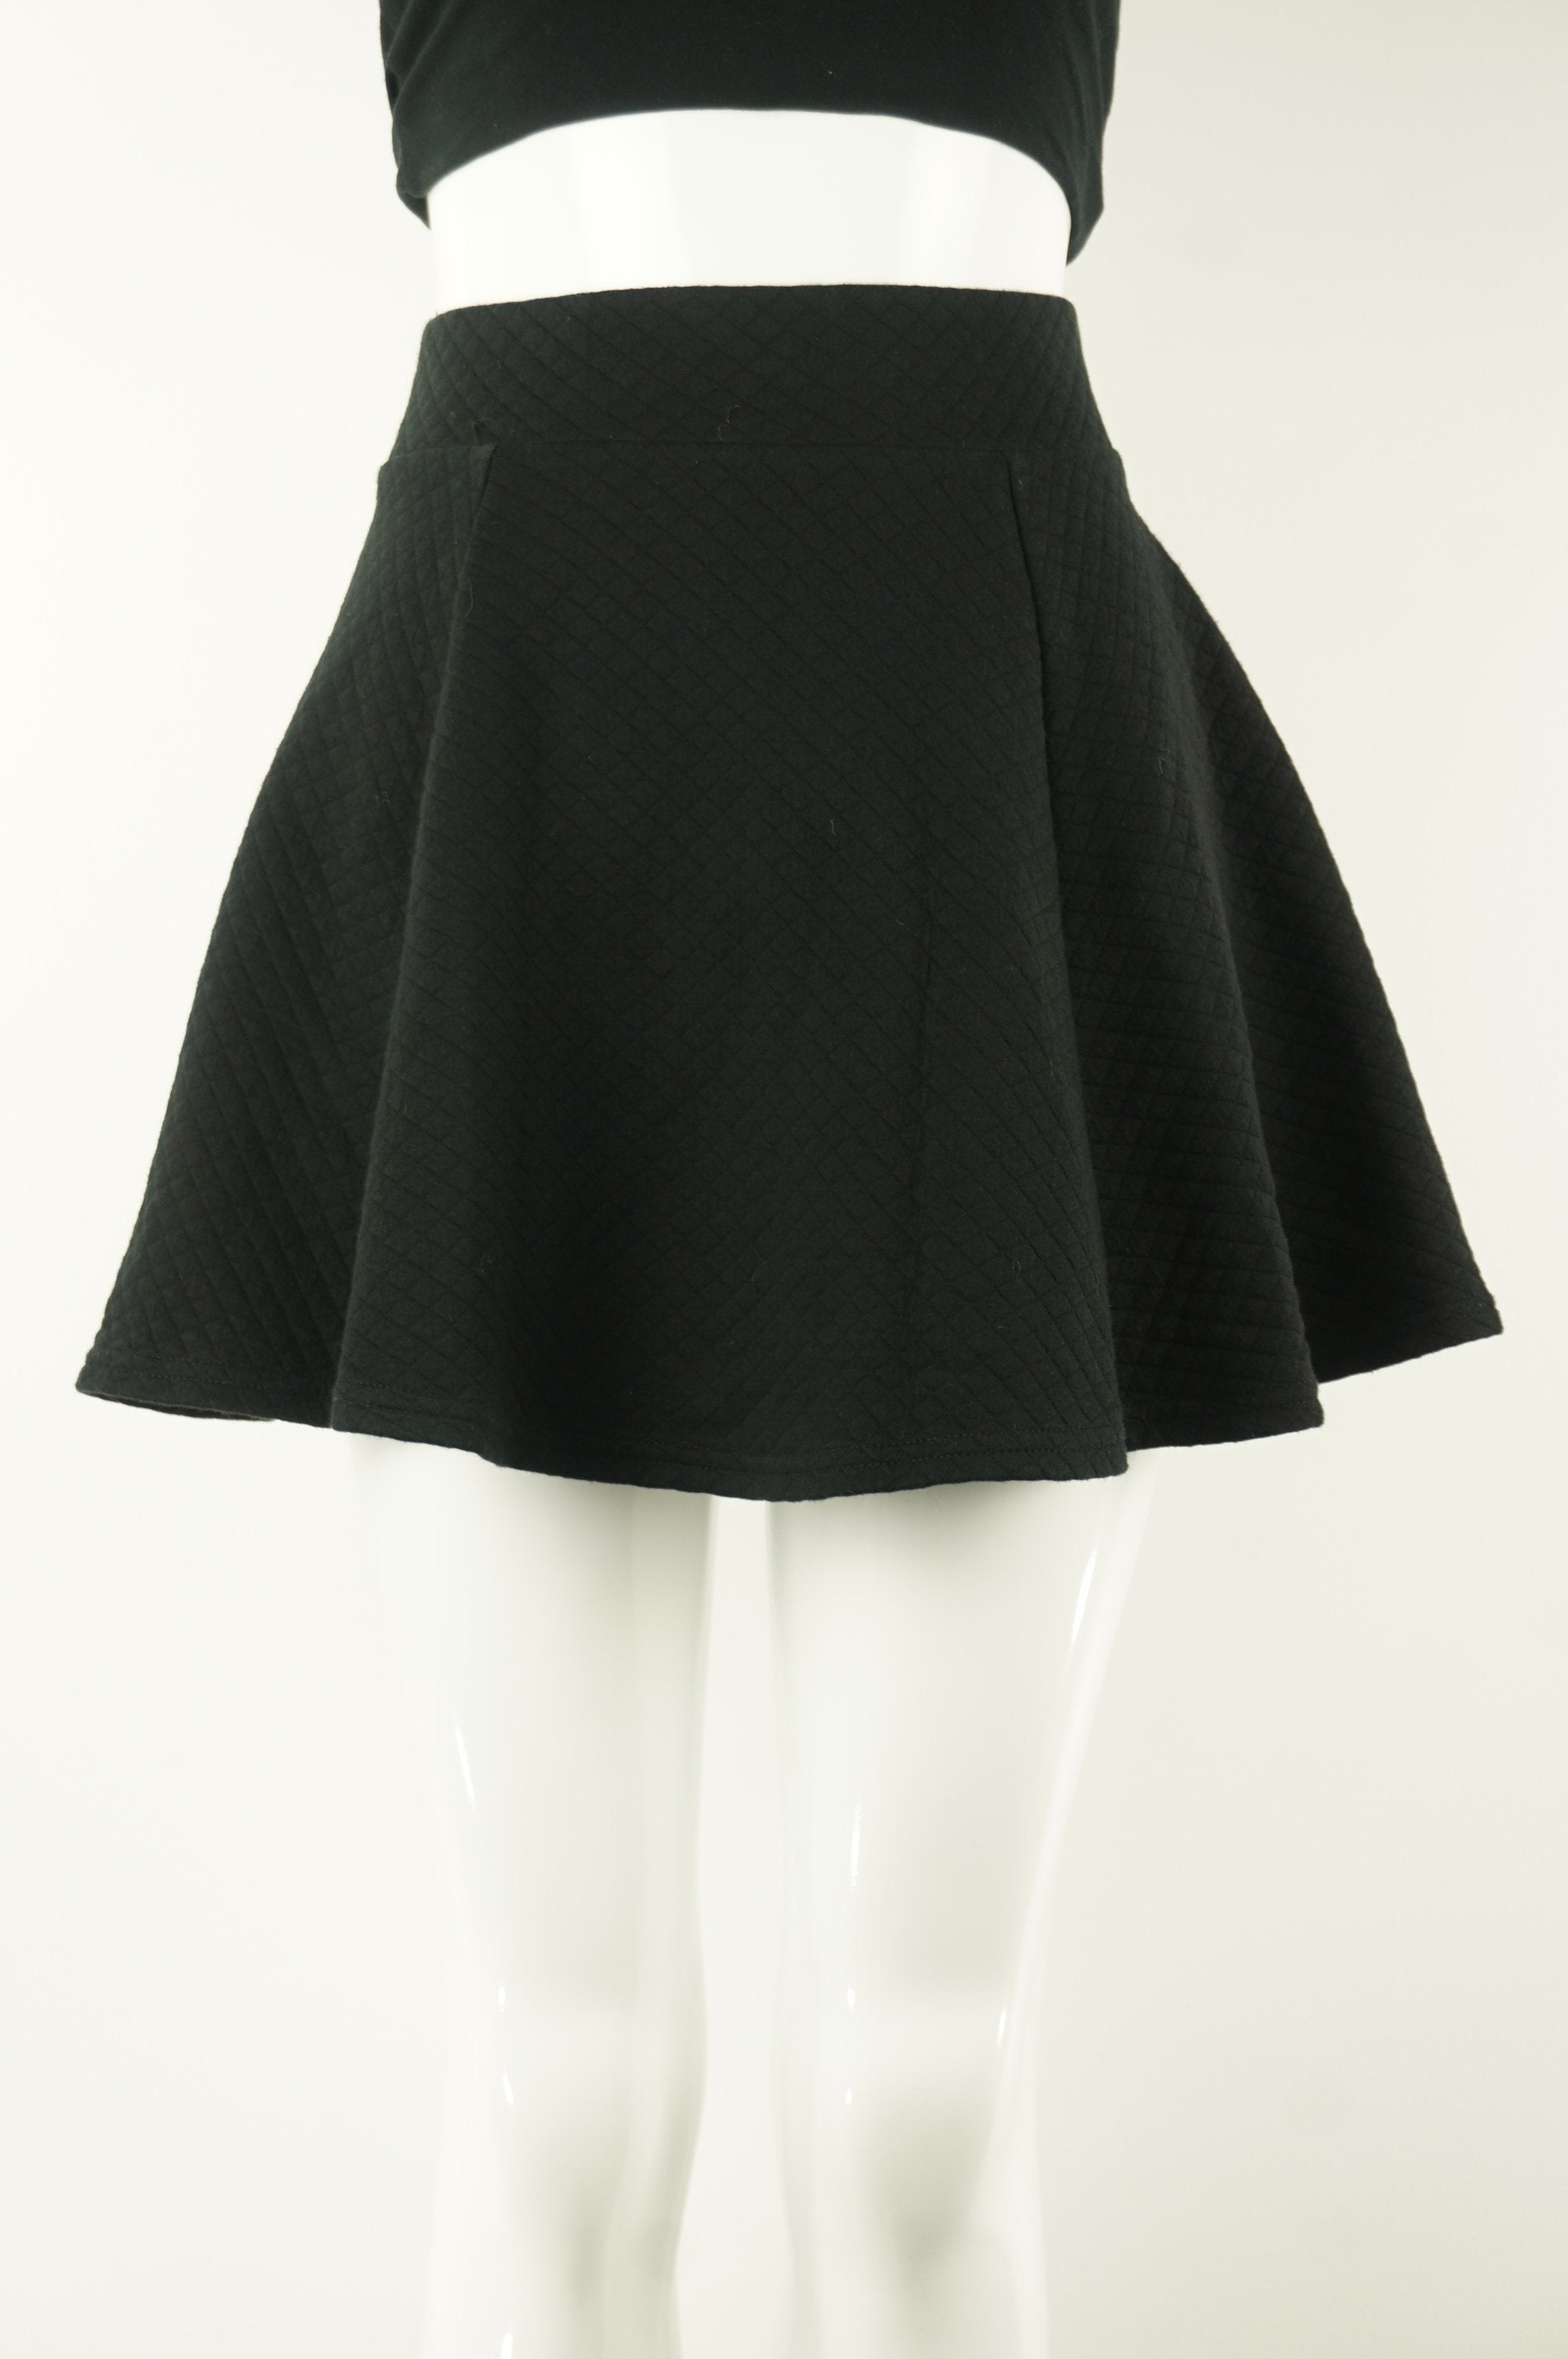 H&M Quilted Skirt, Thicker quilted skirt with zipper in the back. , Black, Cotton and Elastane, women's Skirts & Shorts, women's Black Skirts & Shorts, H&M women's Skirts & Shorts, women's quilted mini skirt, women's black short skirt